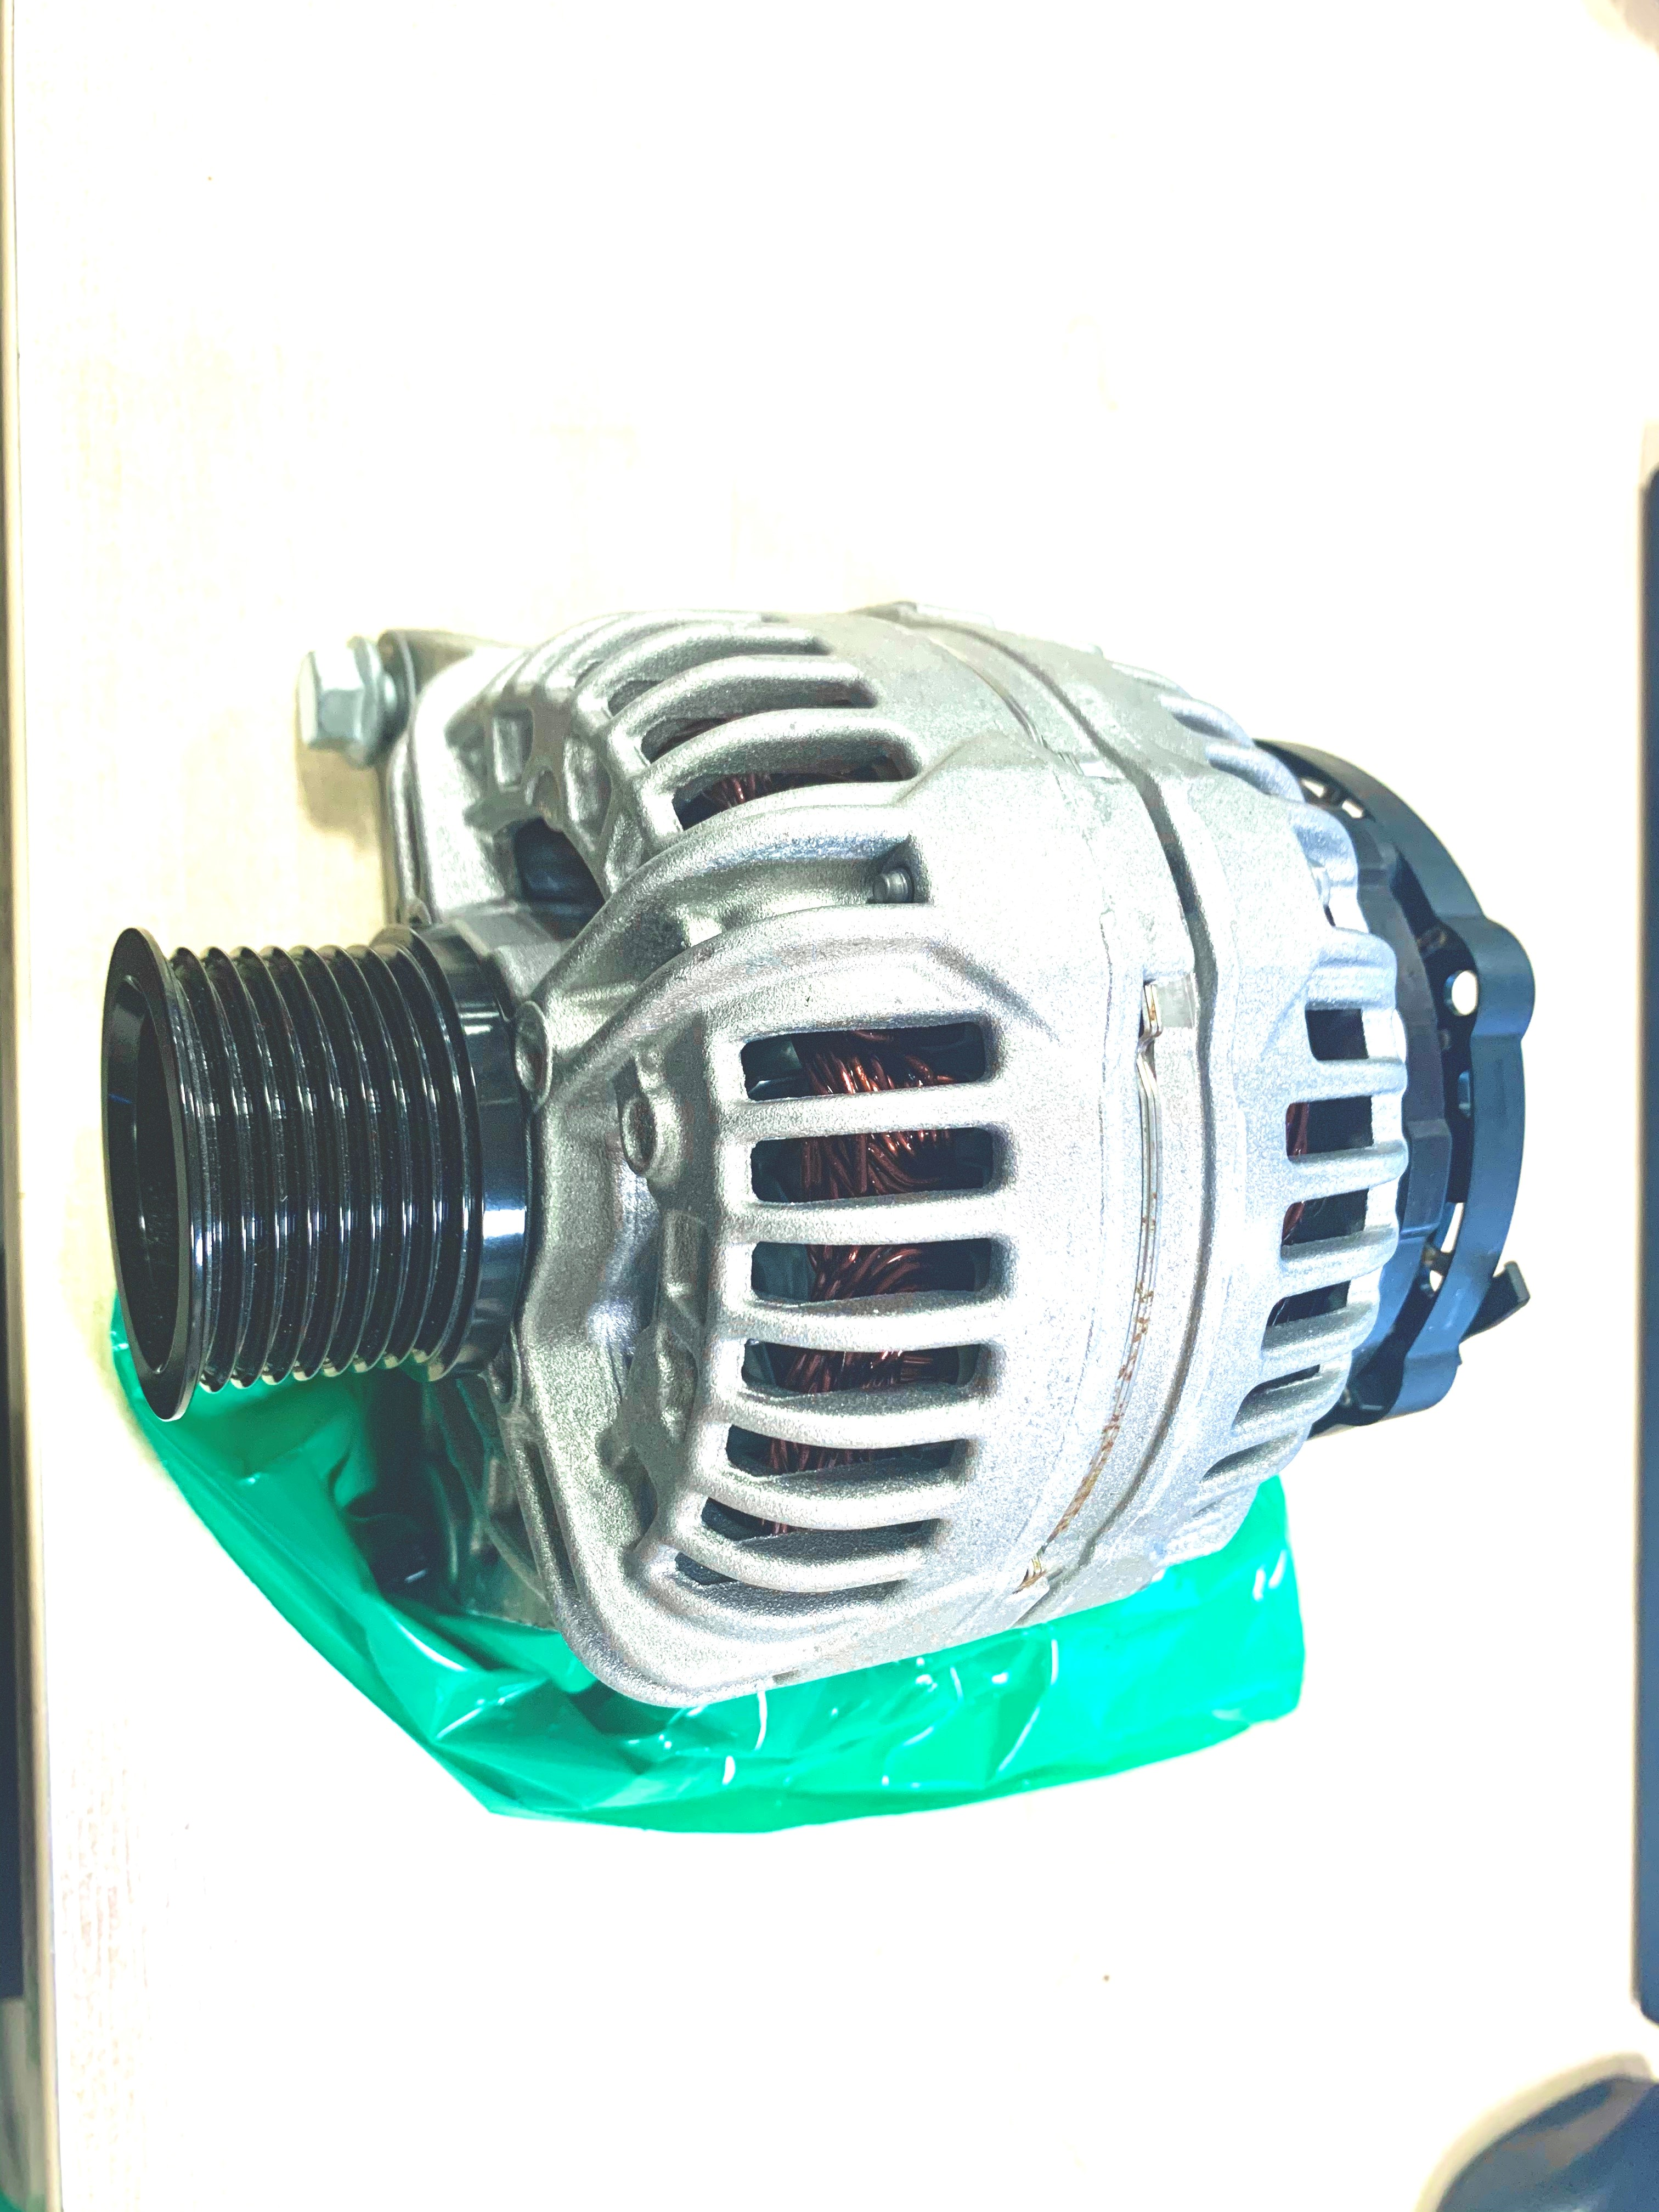 TP4U - RECYCLED NEW DAF ALTERNATOR 80AMP FOR LF EURO 6 PX5 ENGINE